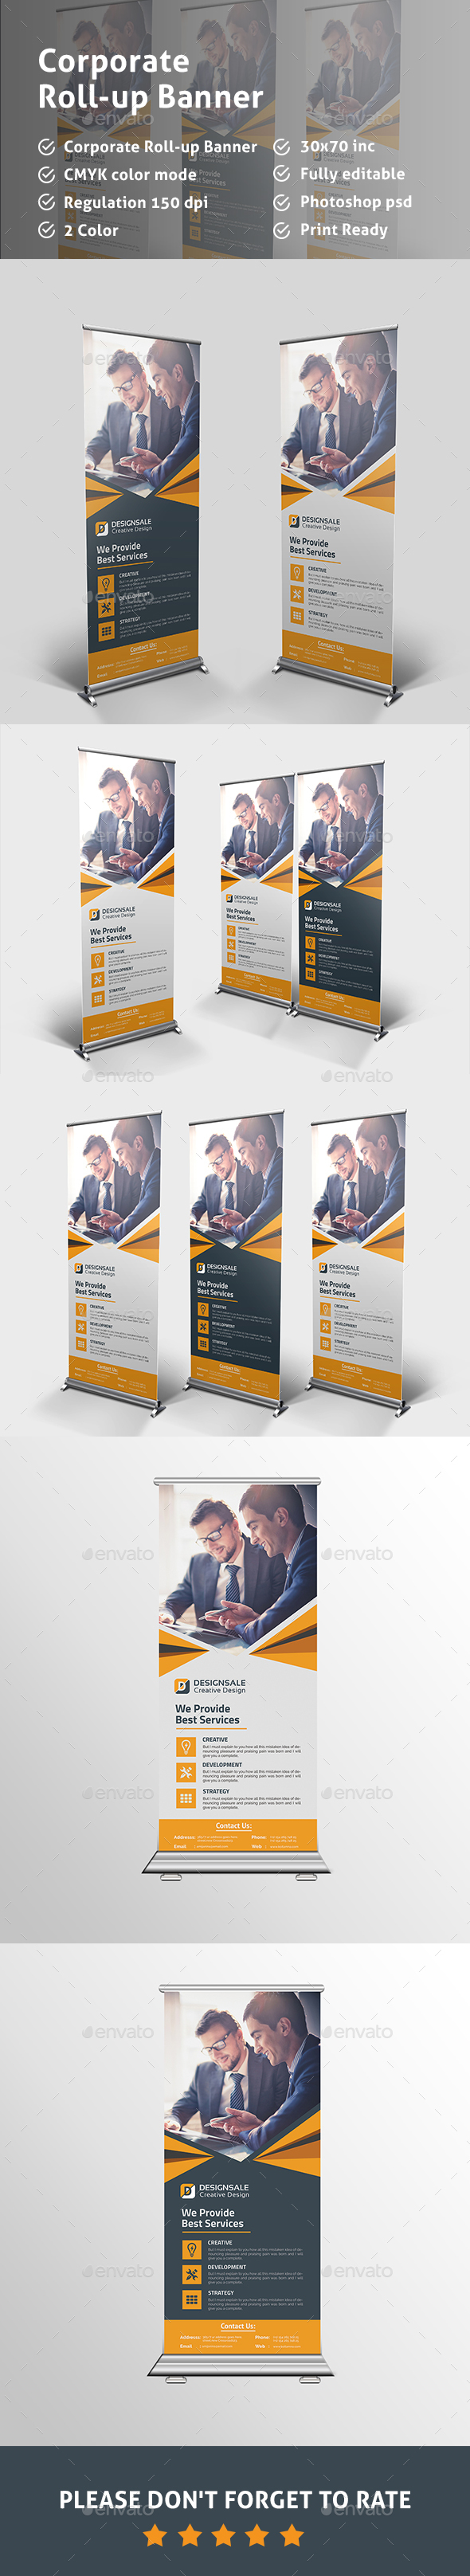 Corporate Roll-up Banner - Signage Print Templates